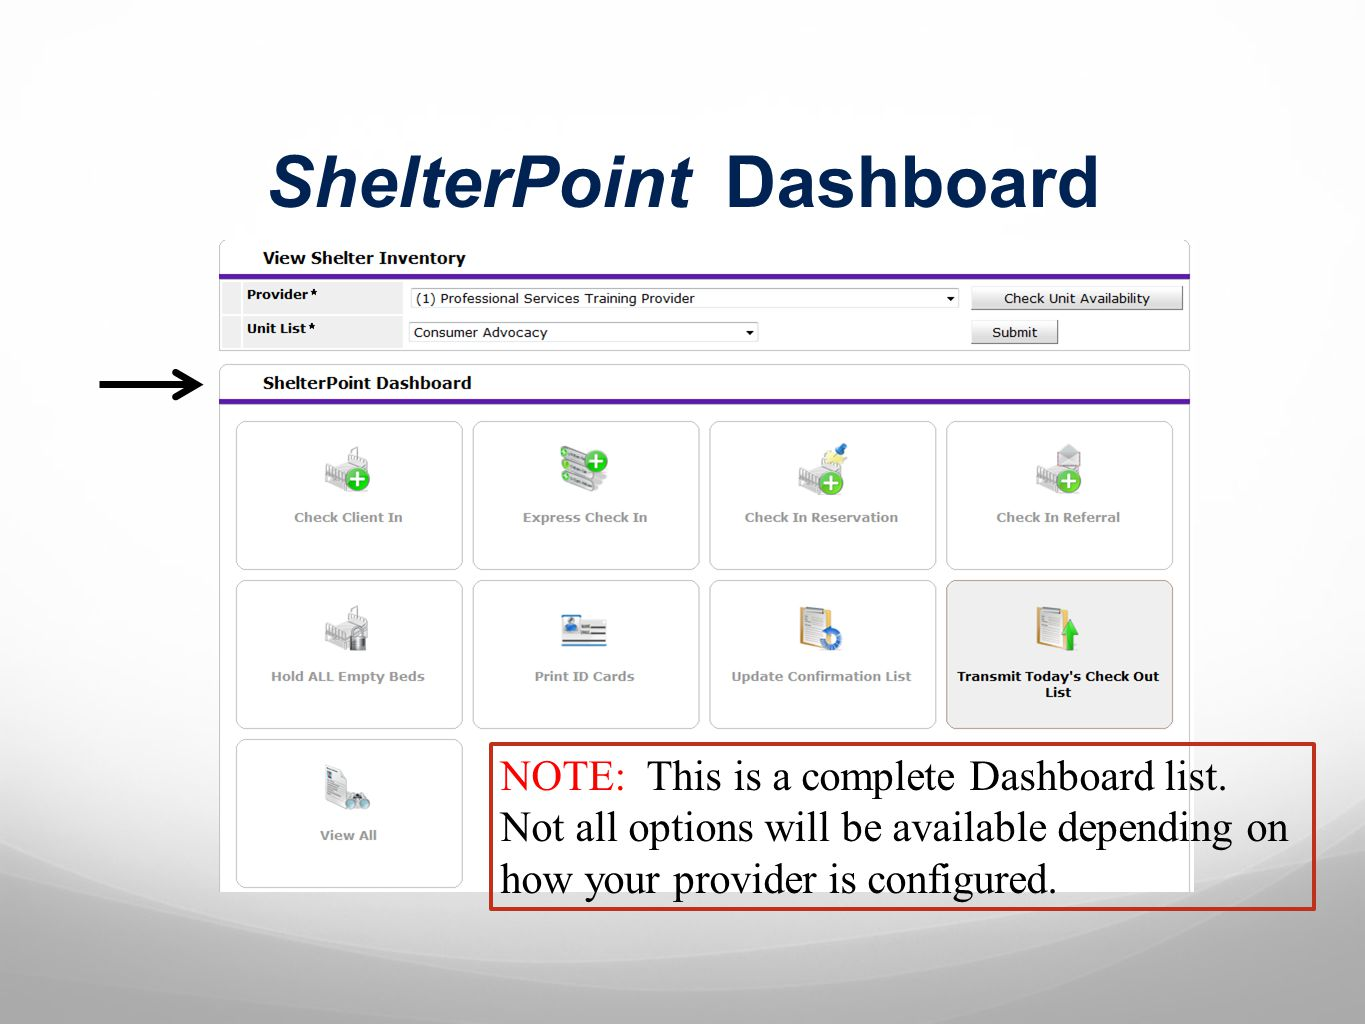 Confirmation & Check Out List Checking Out a Client: After exiting a client from your program, the next step is to check them out of your shelter.